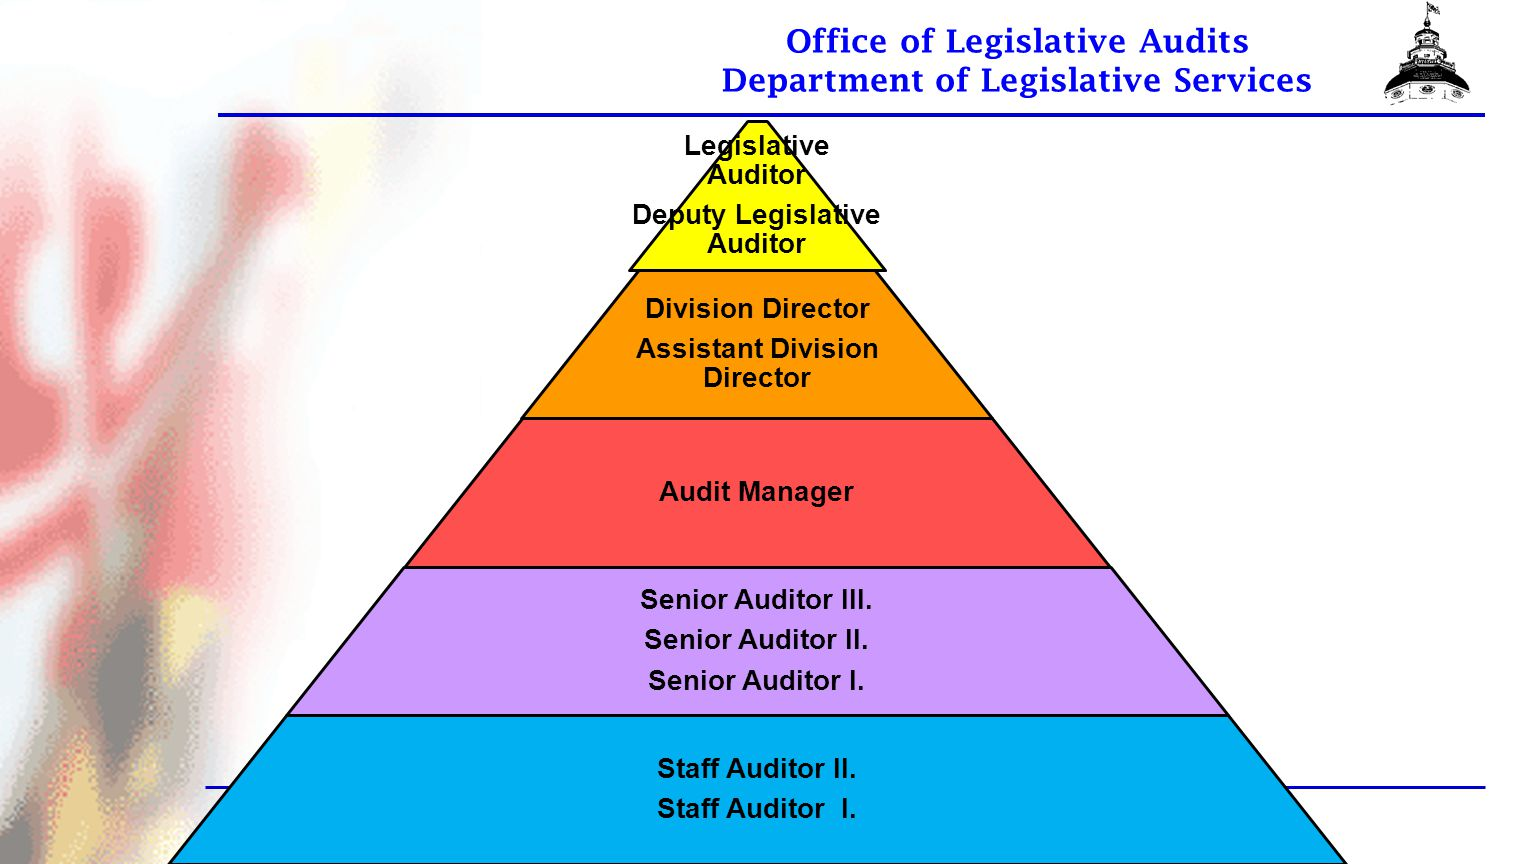 Office of Legislative Audits Department of Legislative Services OLA Audits - MD Comptrollers Office